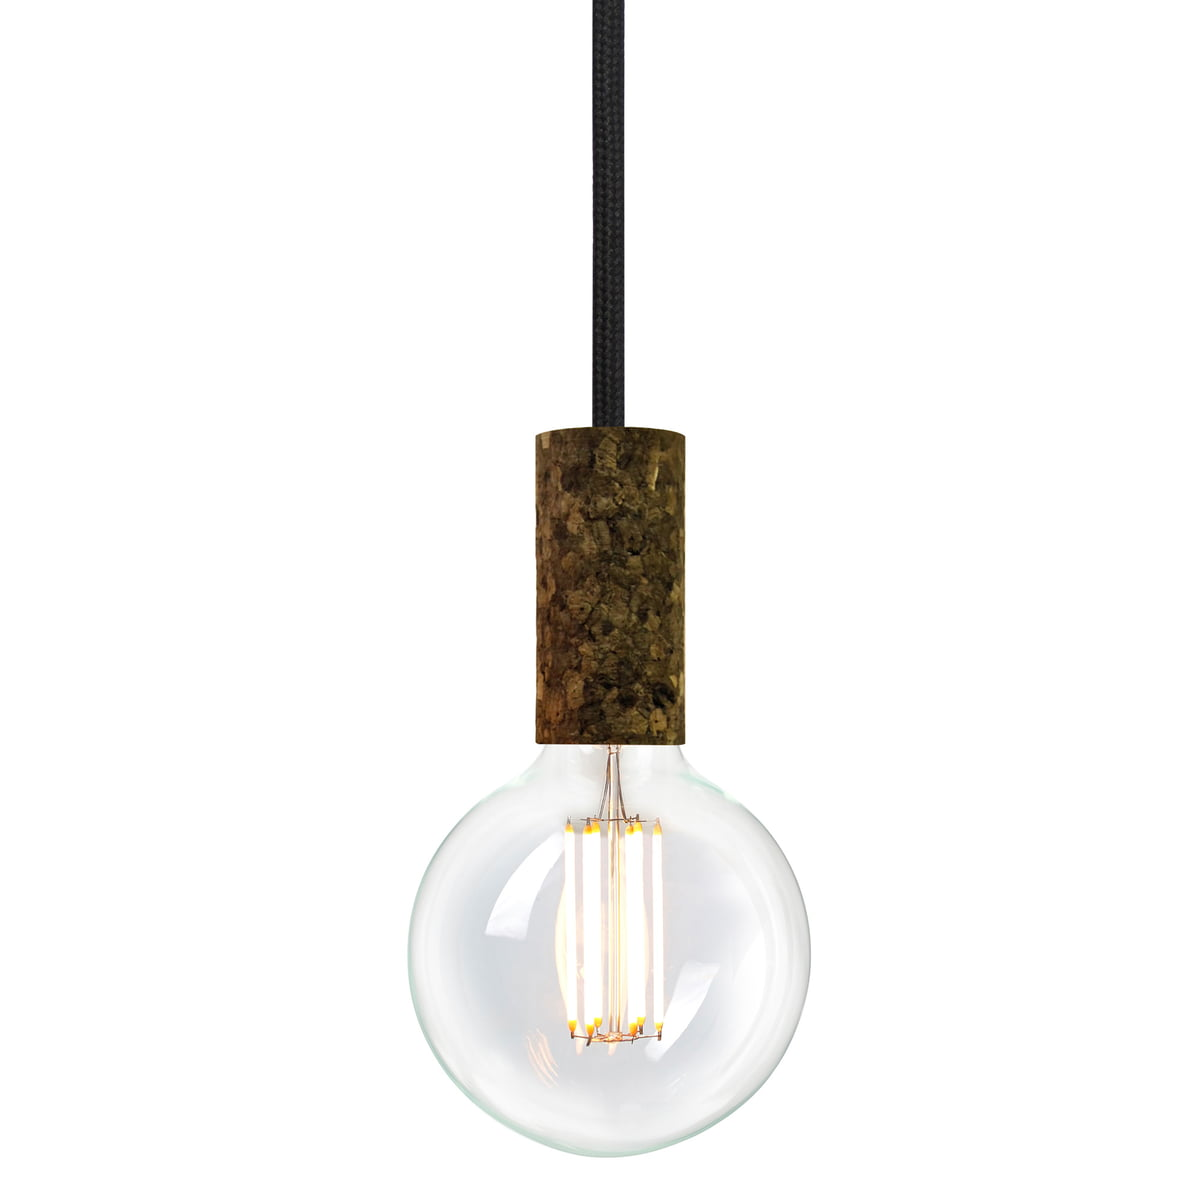 Cork Soil Raven (TT 09) By NUD Collection With Bulb